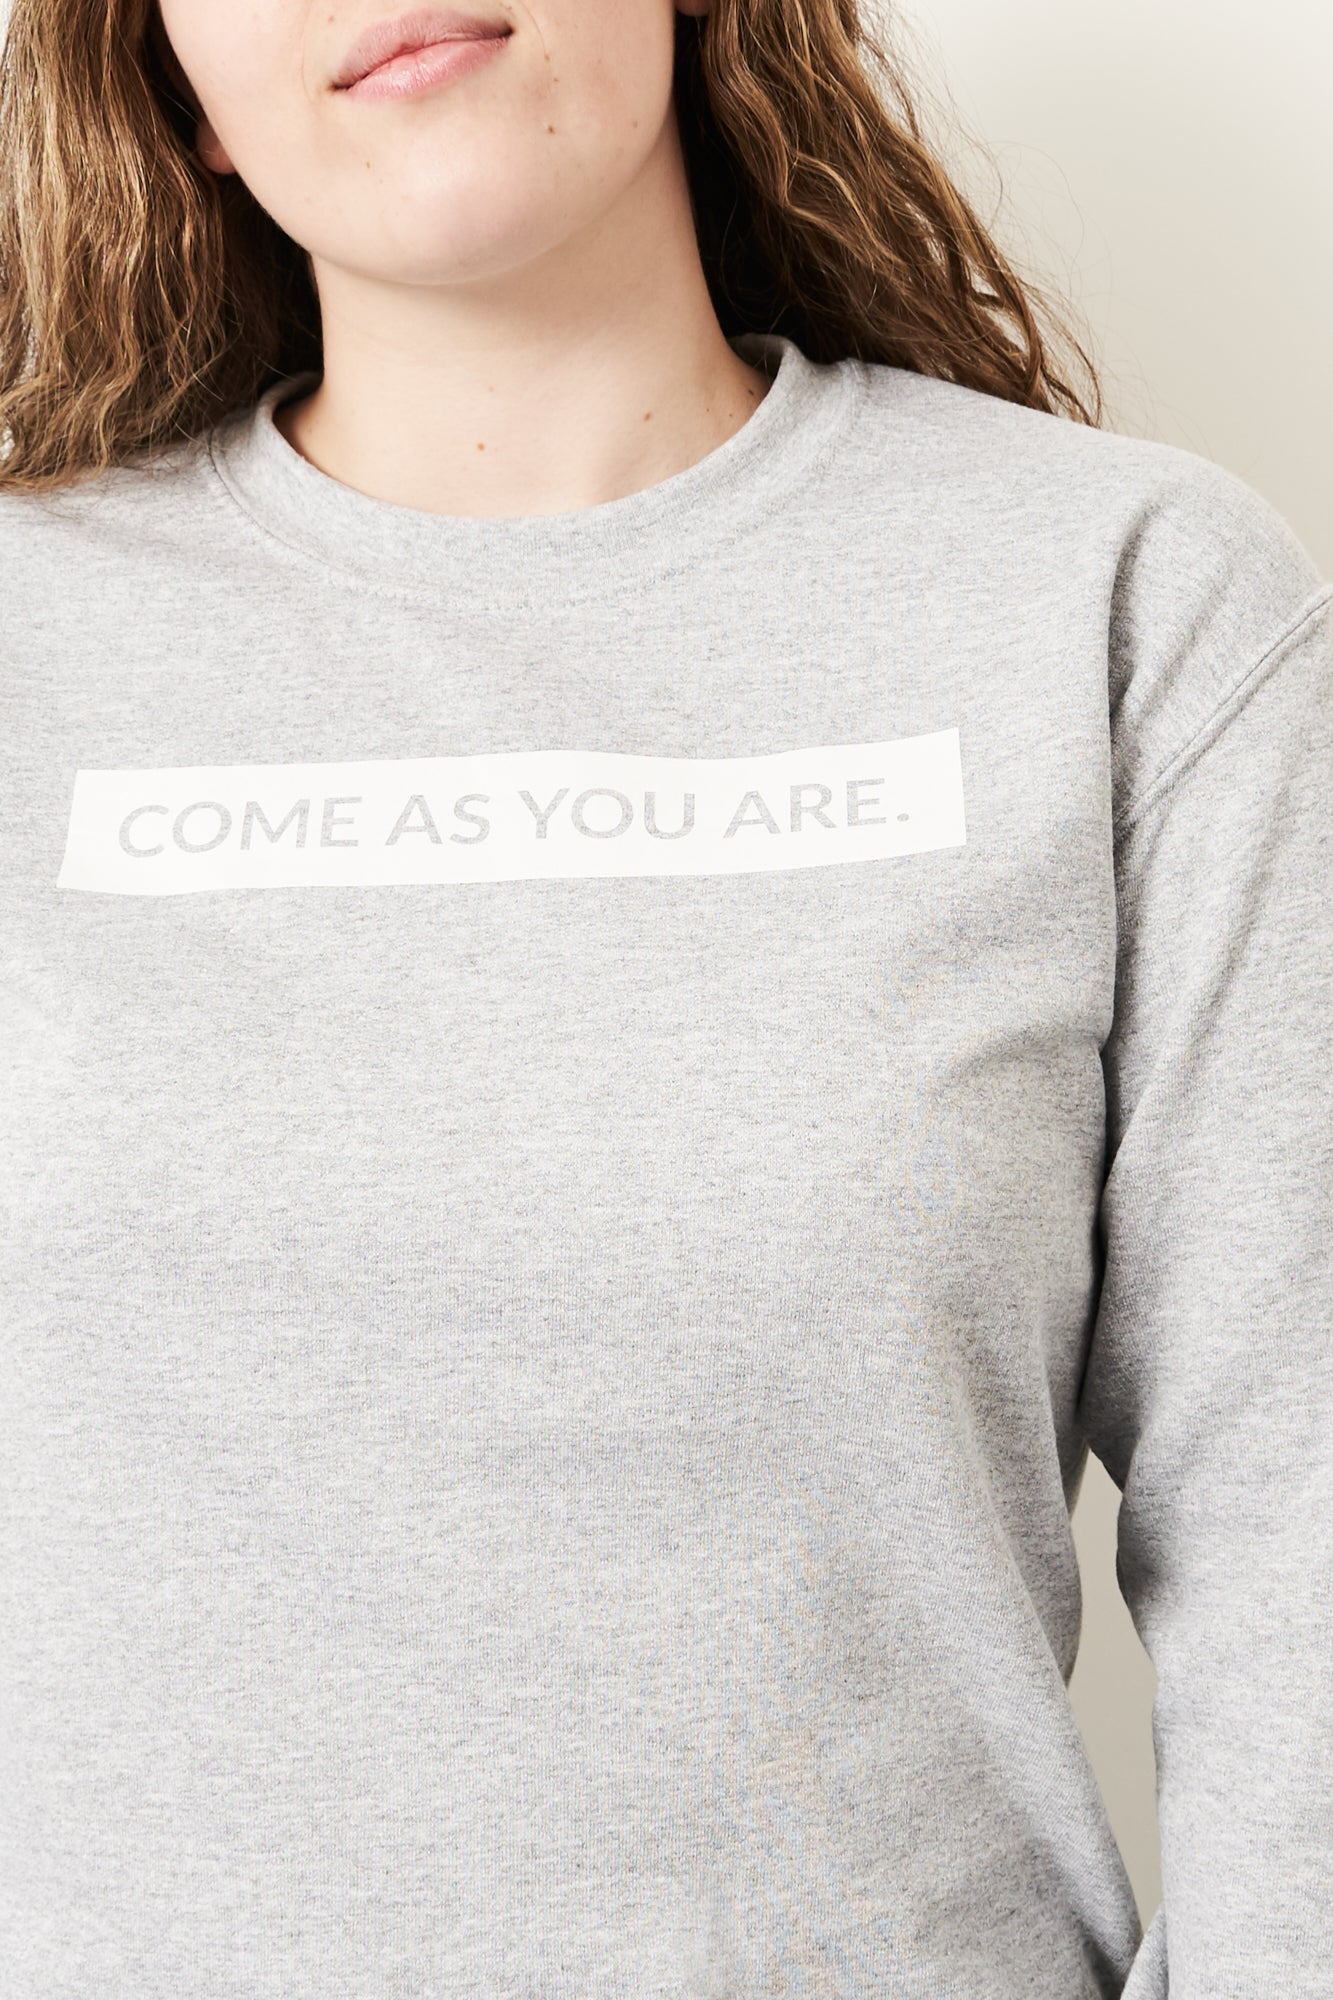 """Come as you are"" Crewneck - Unisex"